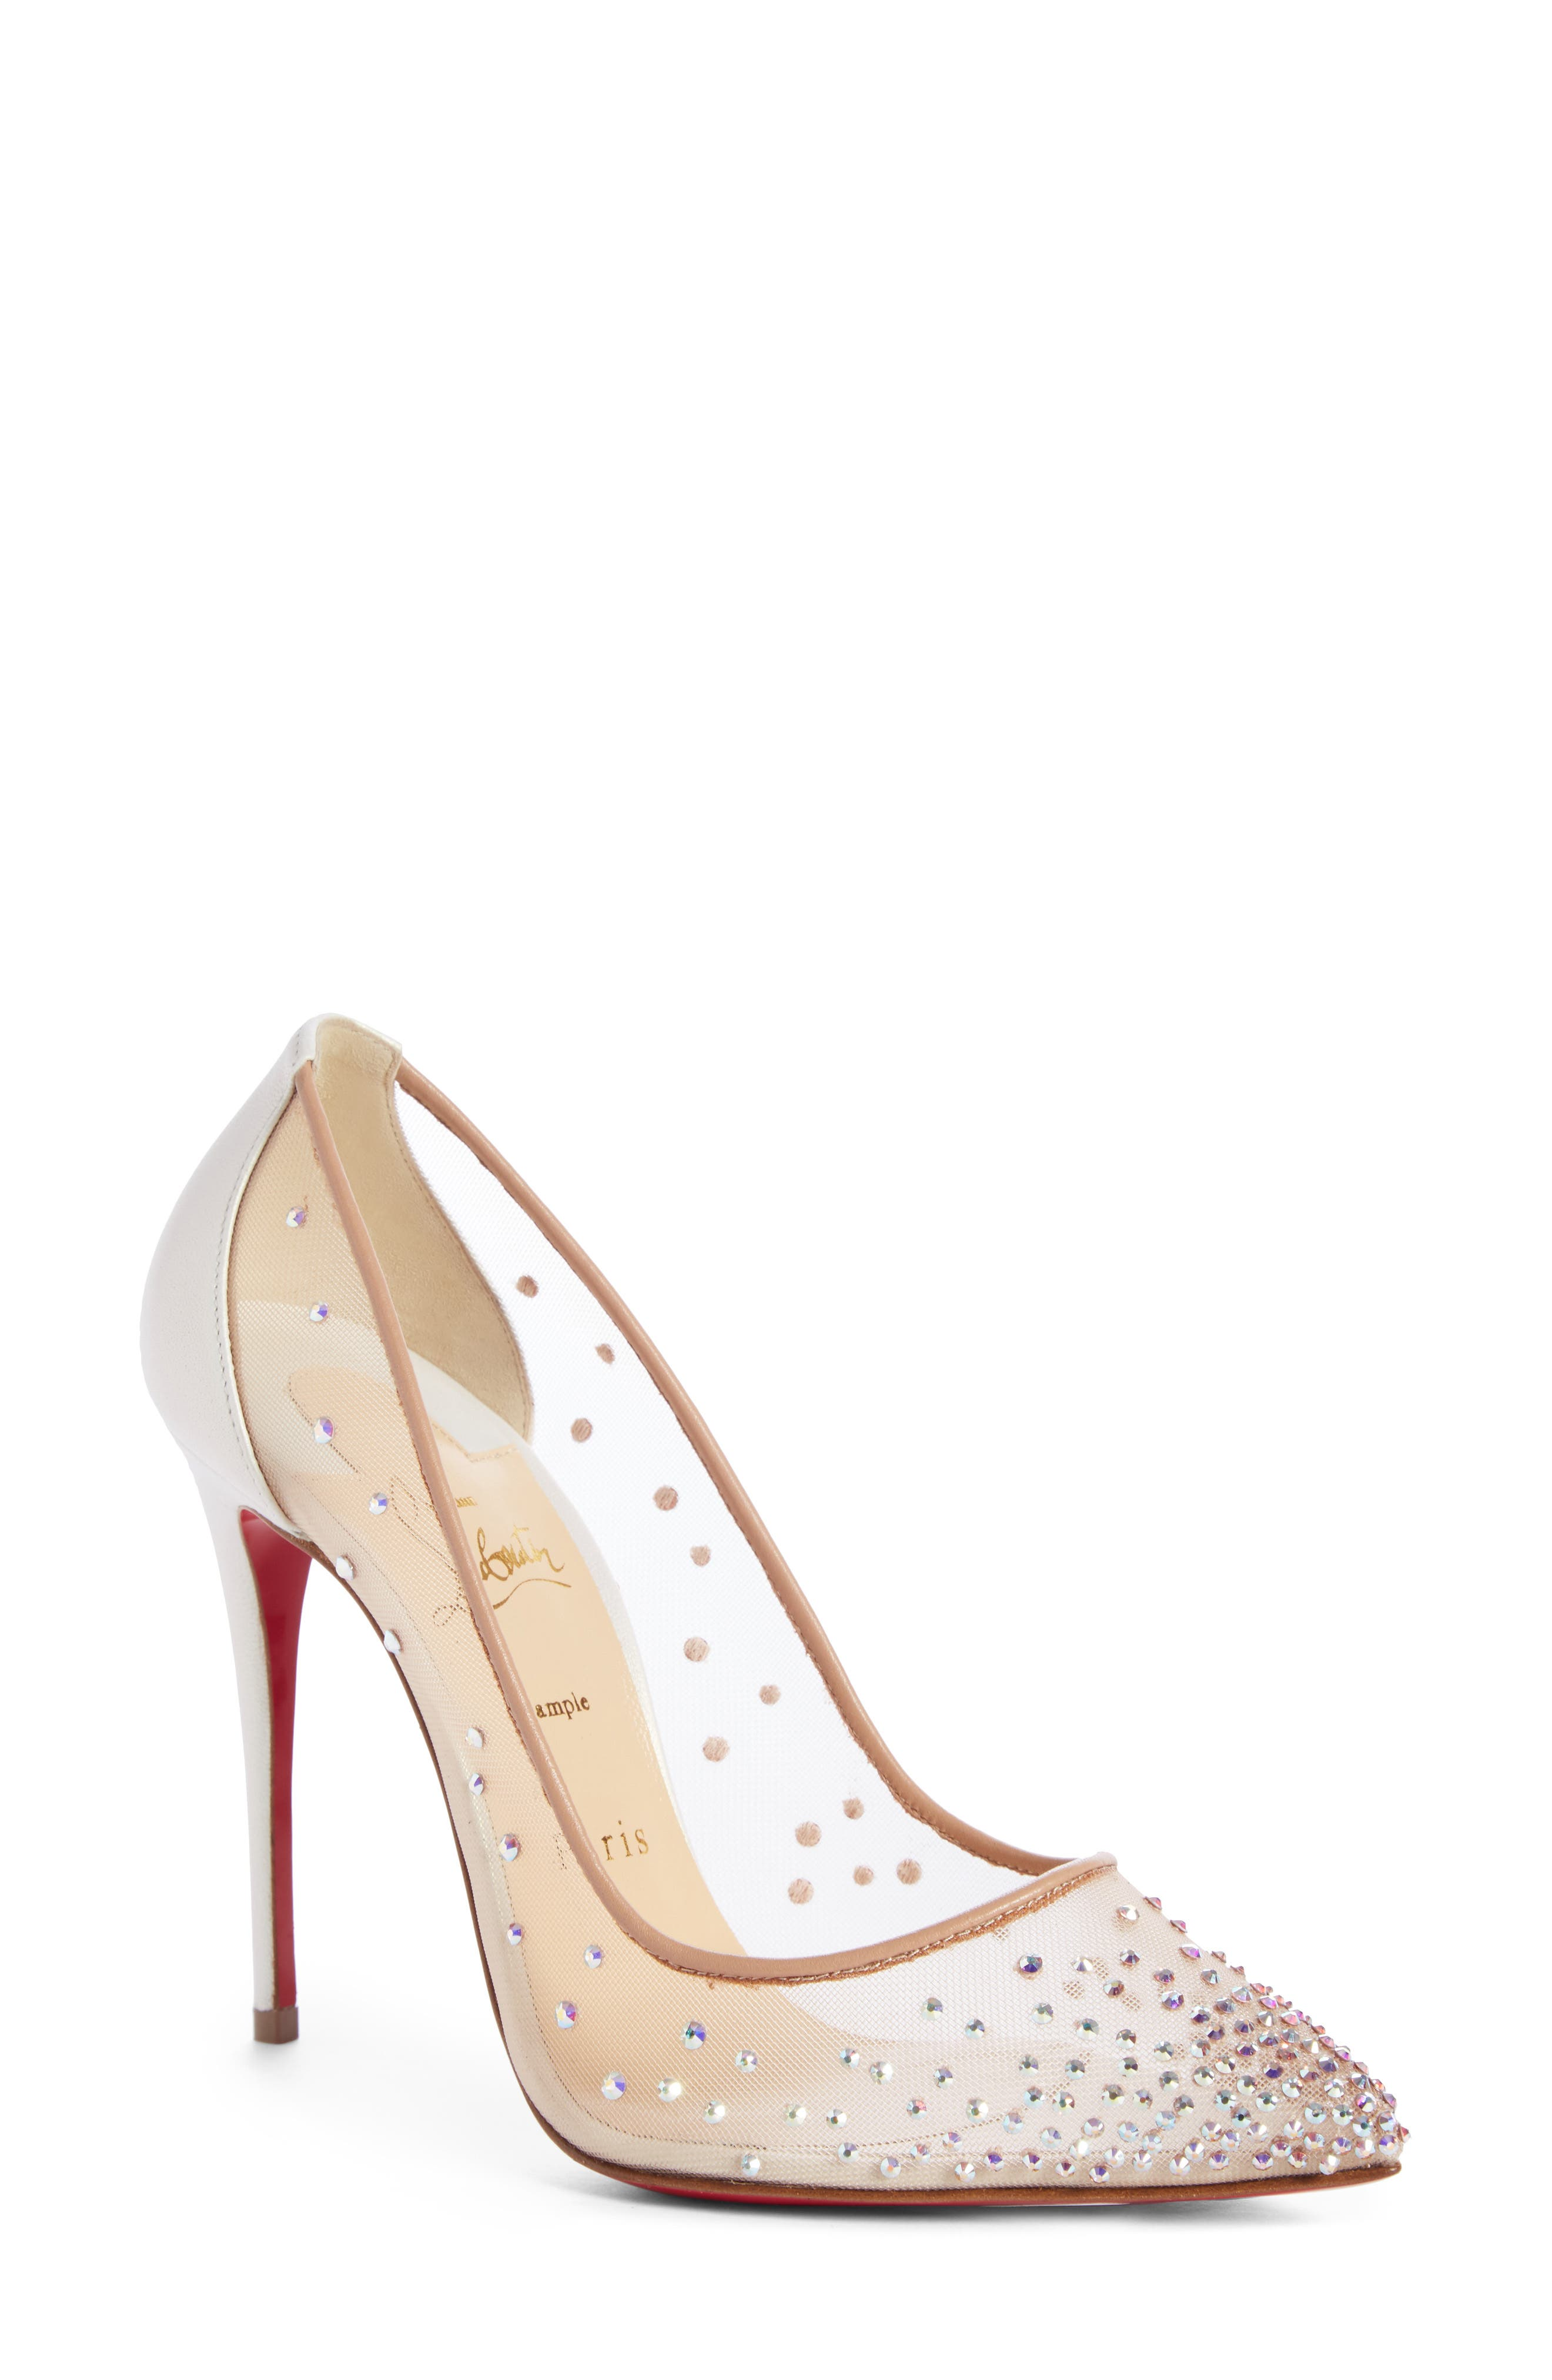 Follies Strass Pointy Toe Pump,                         Main,                         color, SNOW/ NUDE